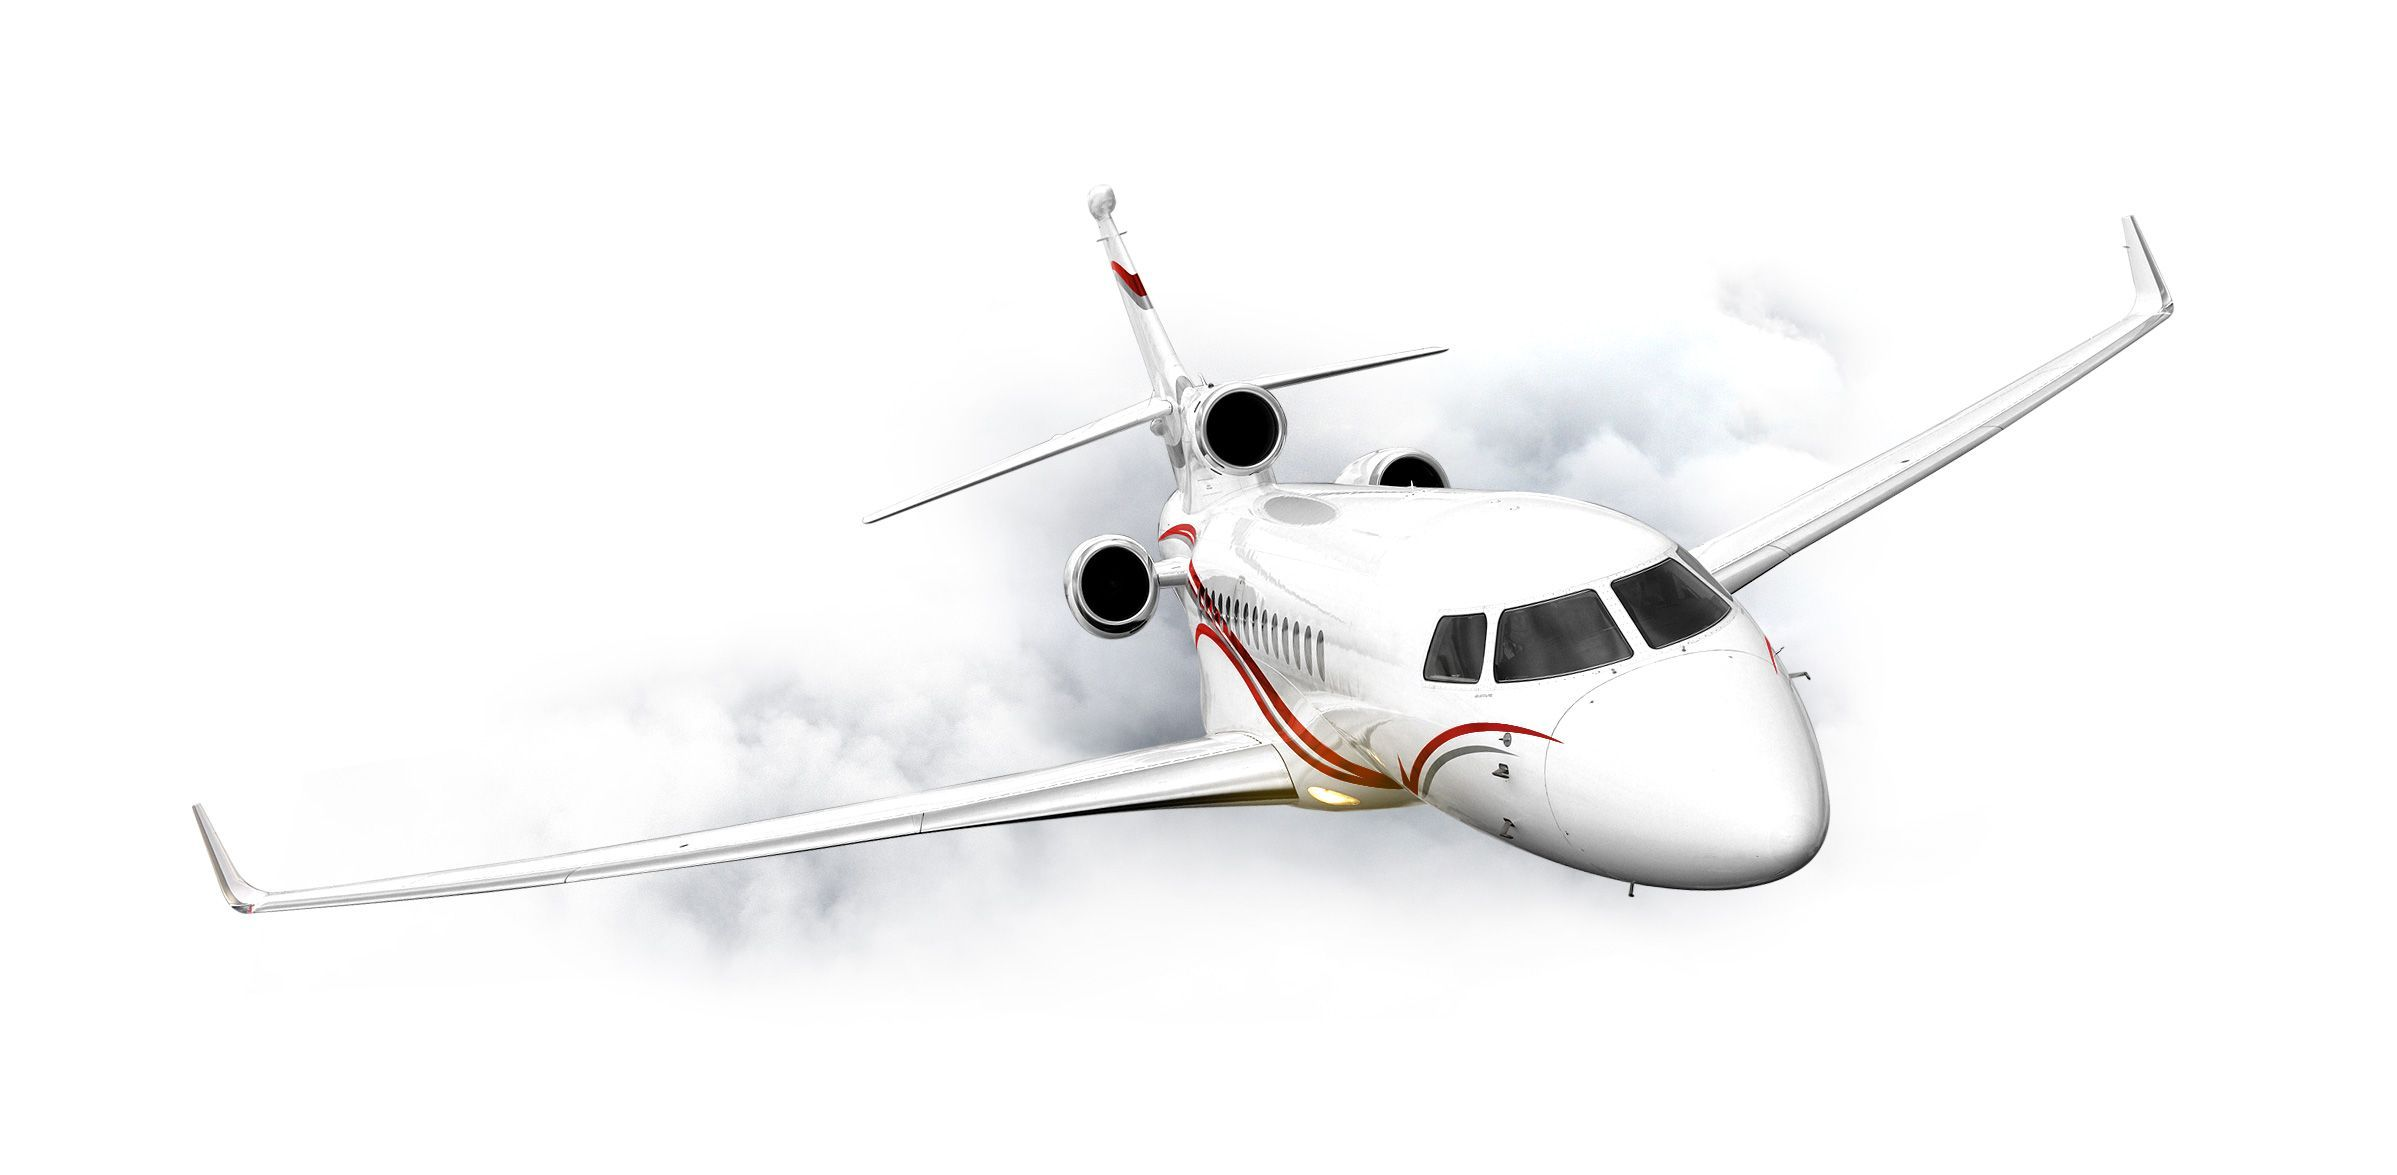 Dassault falcon 7x covet pinterest falcons aircraft and jets dassault falcon is the first business jet with a digital flight control system it is the companys fastest ever selling business jet malvernweather Choice Image